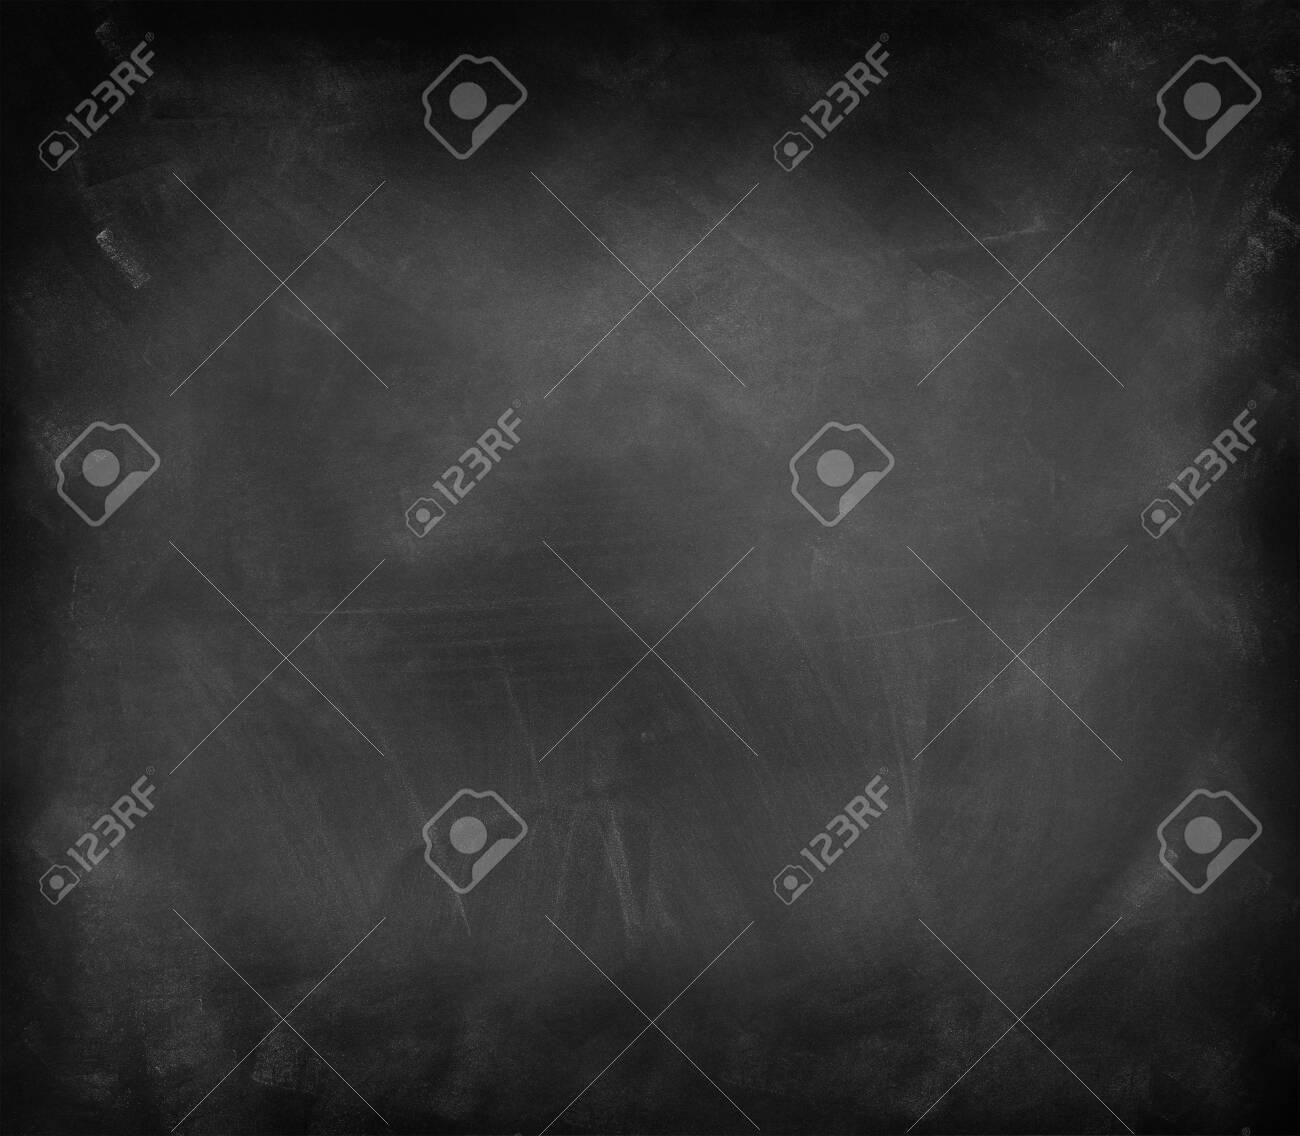 Chalk rubbed out on blackboard background - 135146497